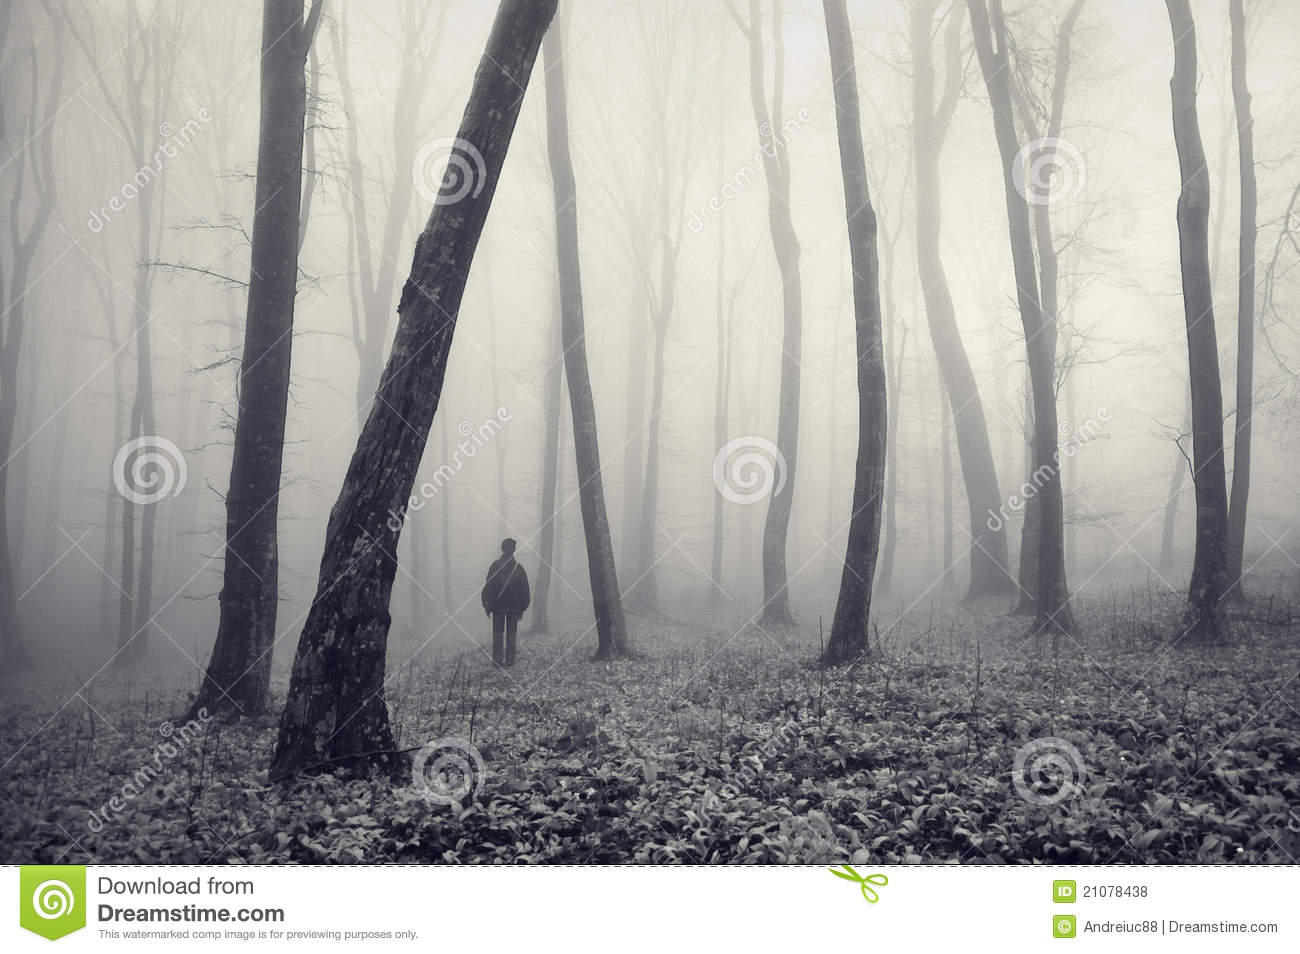 Man in strange mysterious forest with fog